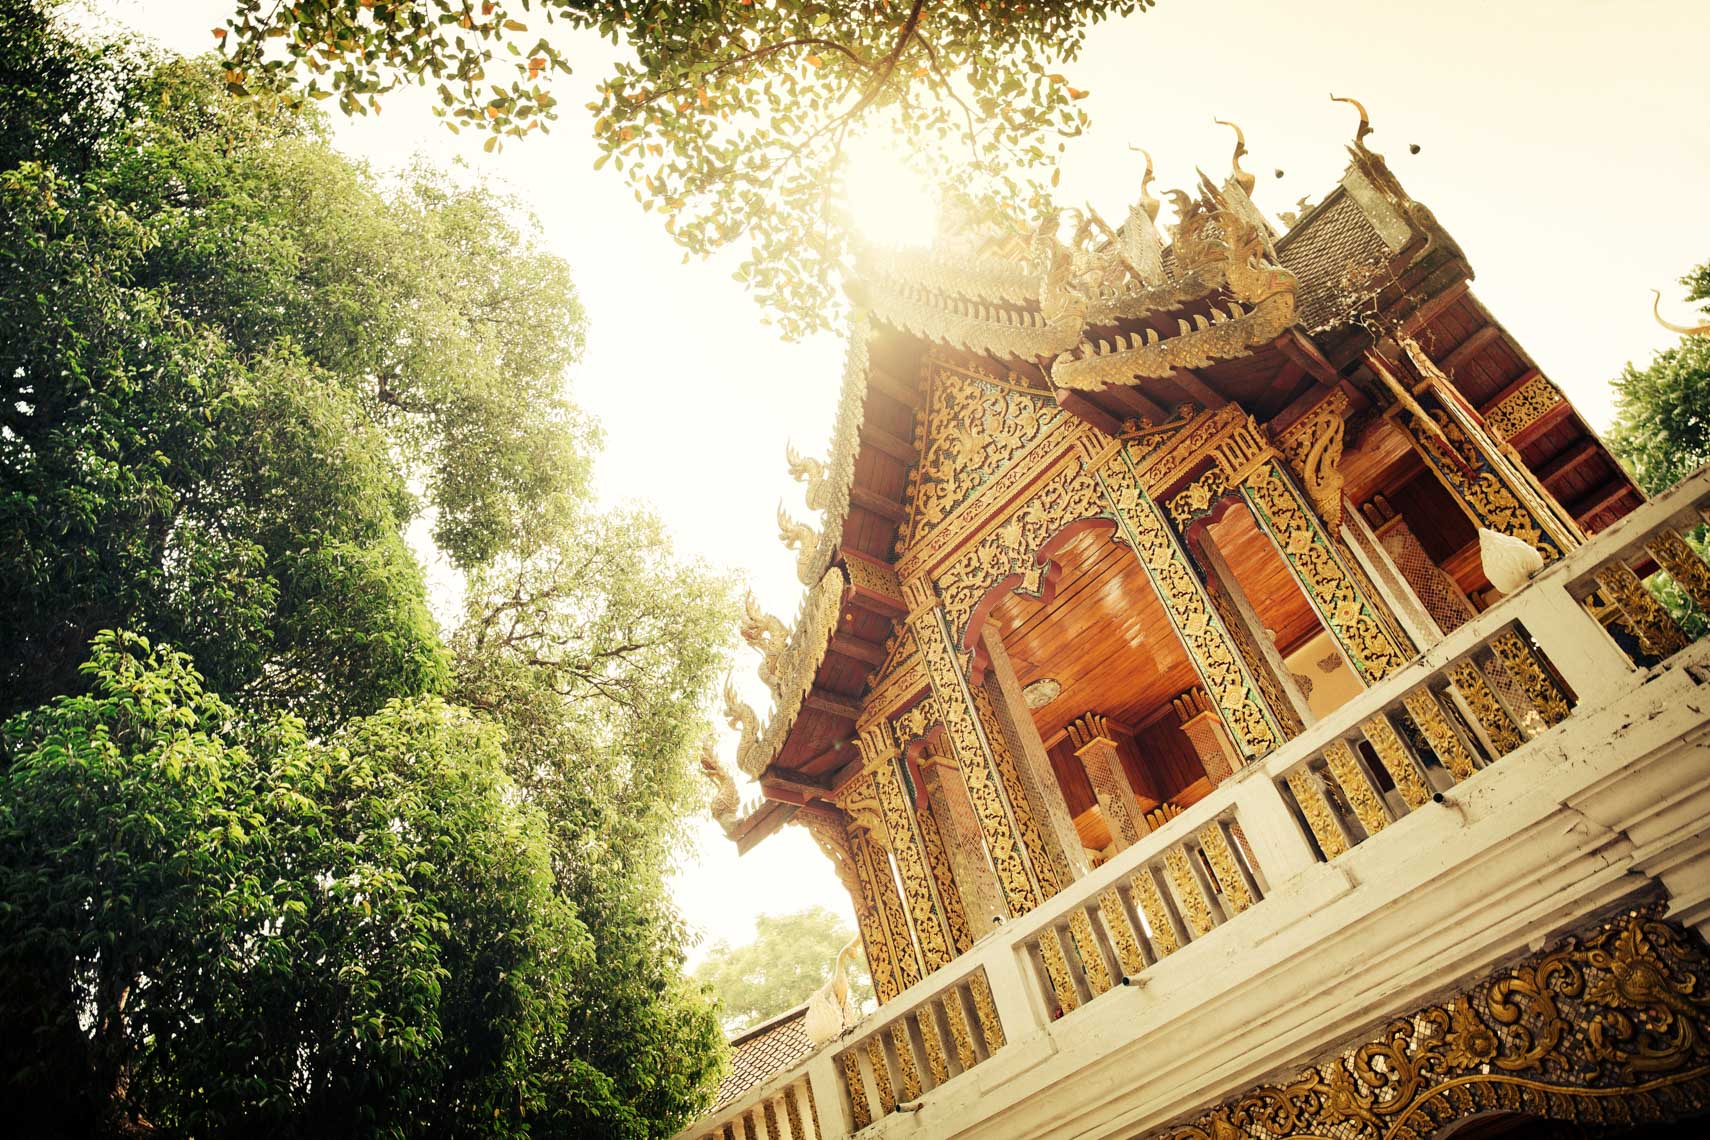 Thailand, Doi Suthep Temple